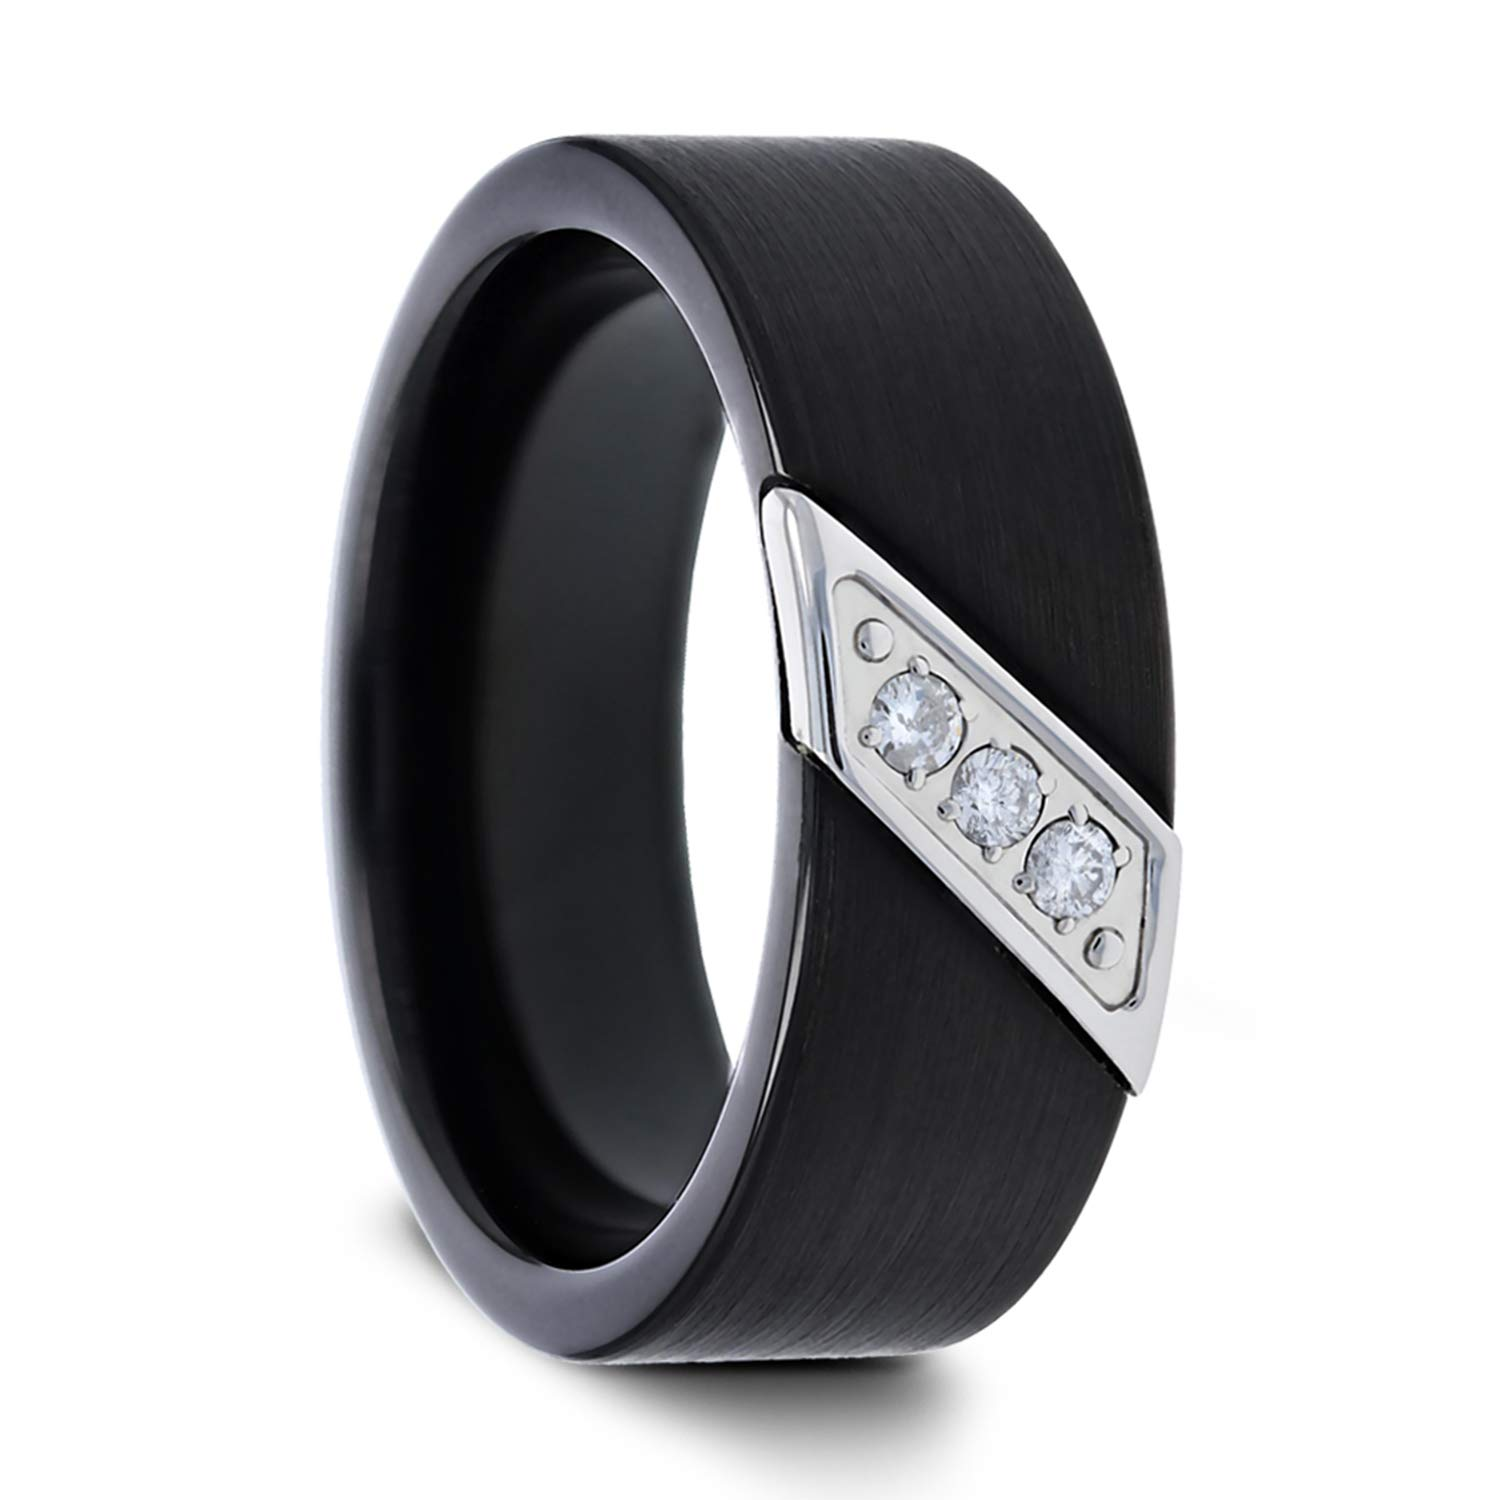 Liam Flat Black Satin Finished Tungsten Carbide Wedding Band with Diagonal Diamonds Set in Stainless Steel - 8 mm (9.5)